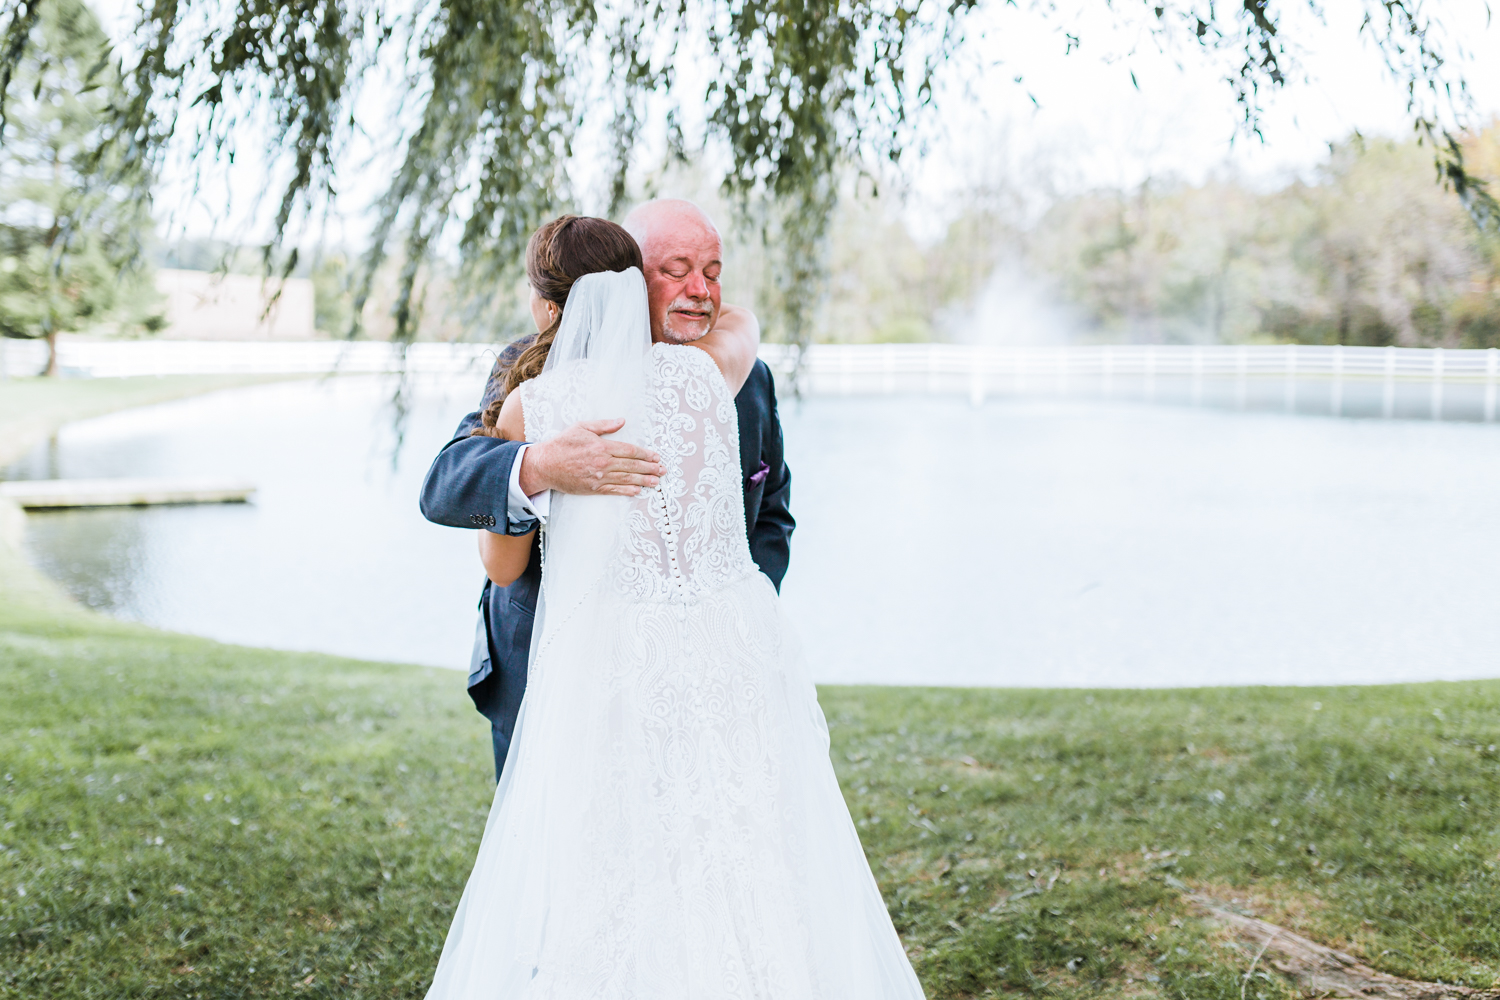 father and bride hug during their first look - Pond View Farm Weddings - best wedding photographer and videographer in Maryland